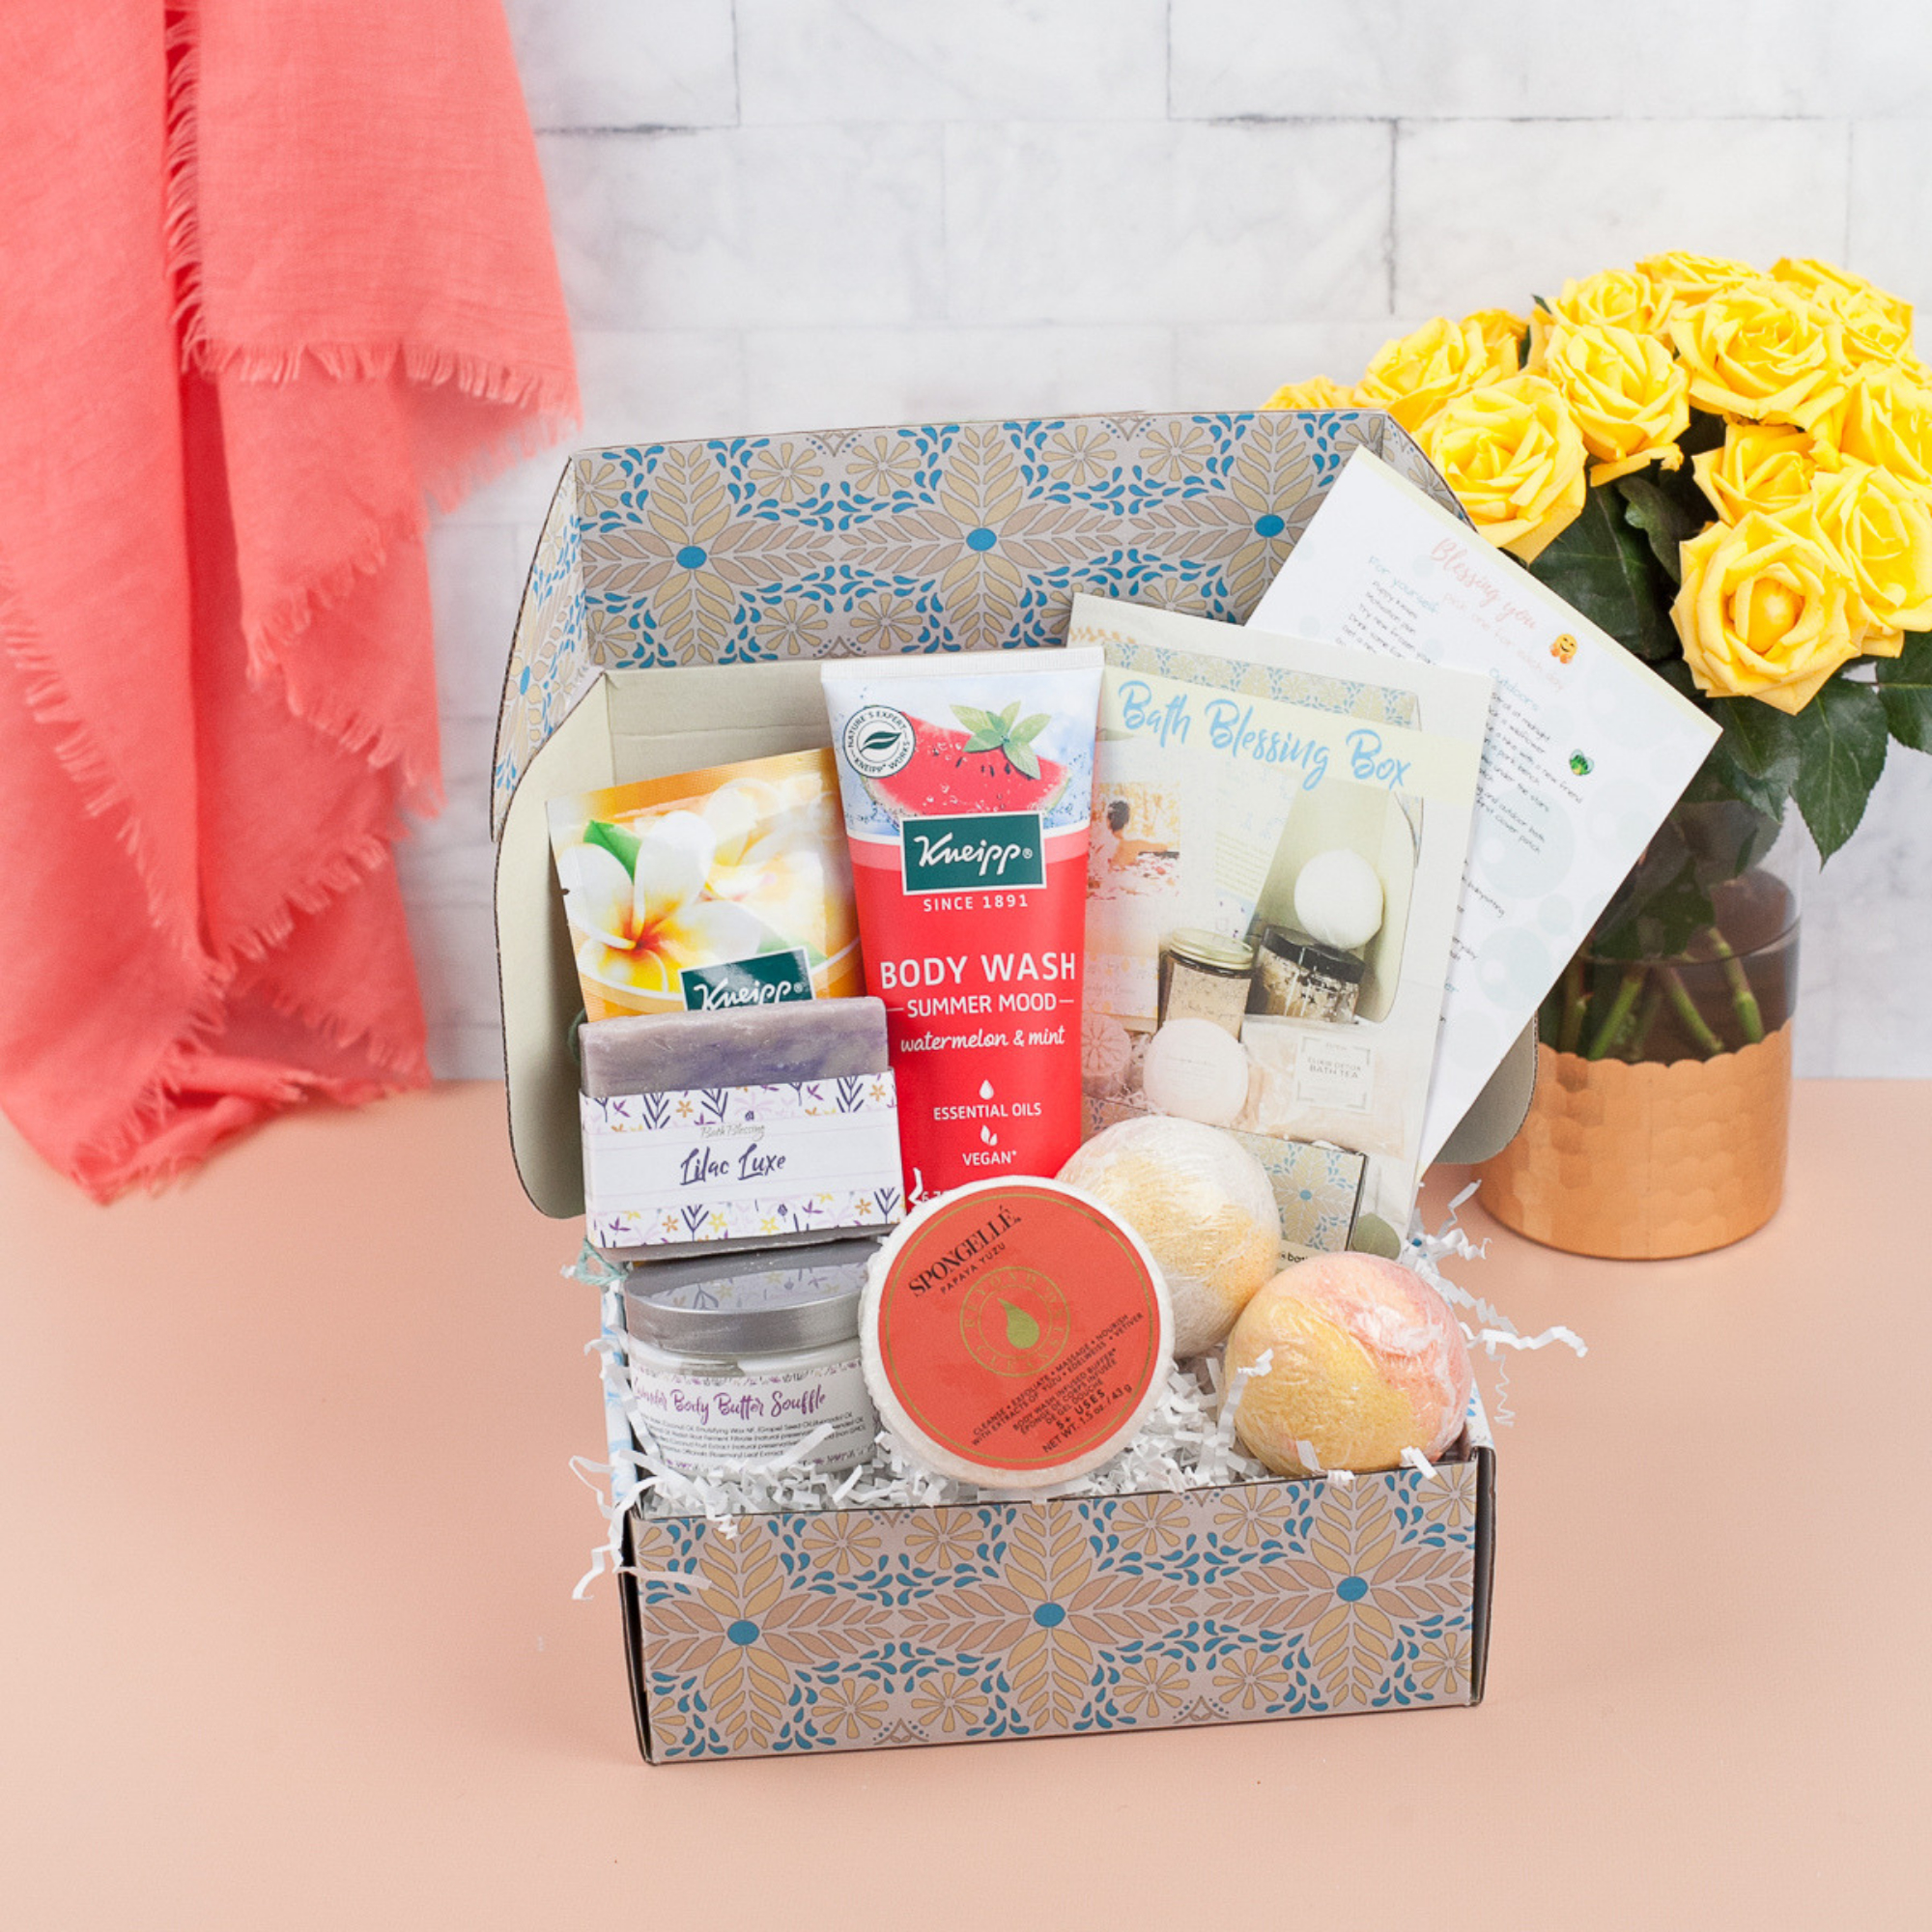 Bath Blessing Sanctuary Bath Subscription Box: 5+ Bath Products